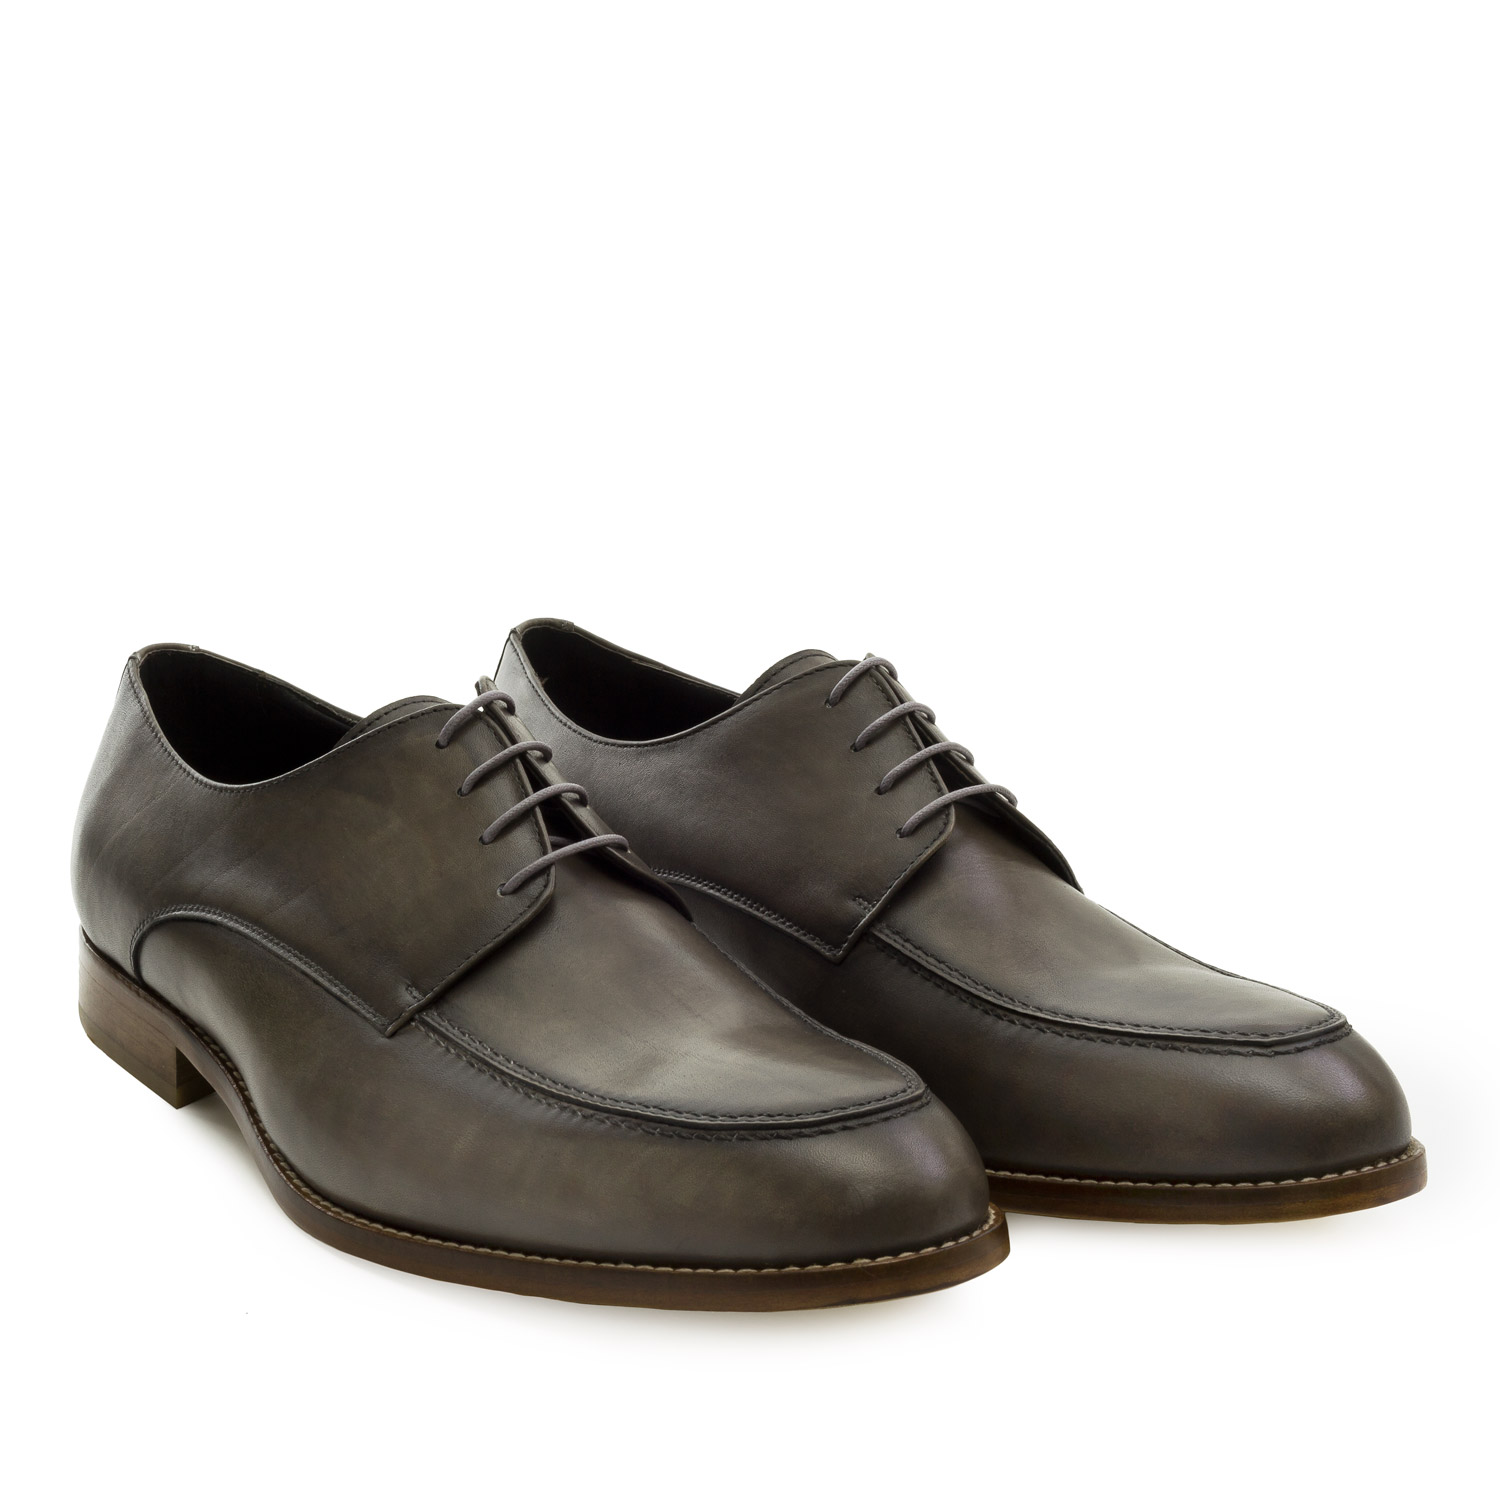 Men's Oxford Shoes in Taupe Leather